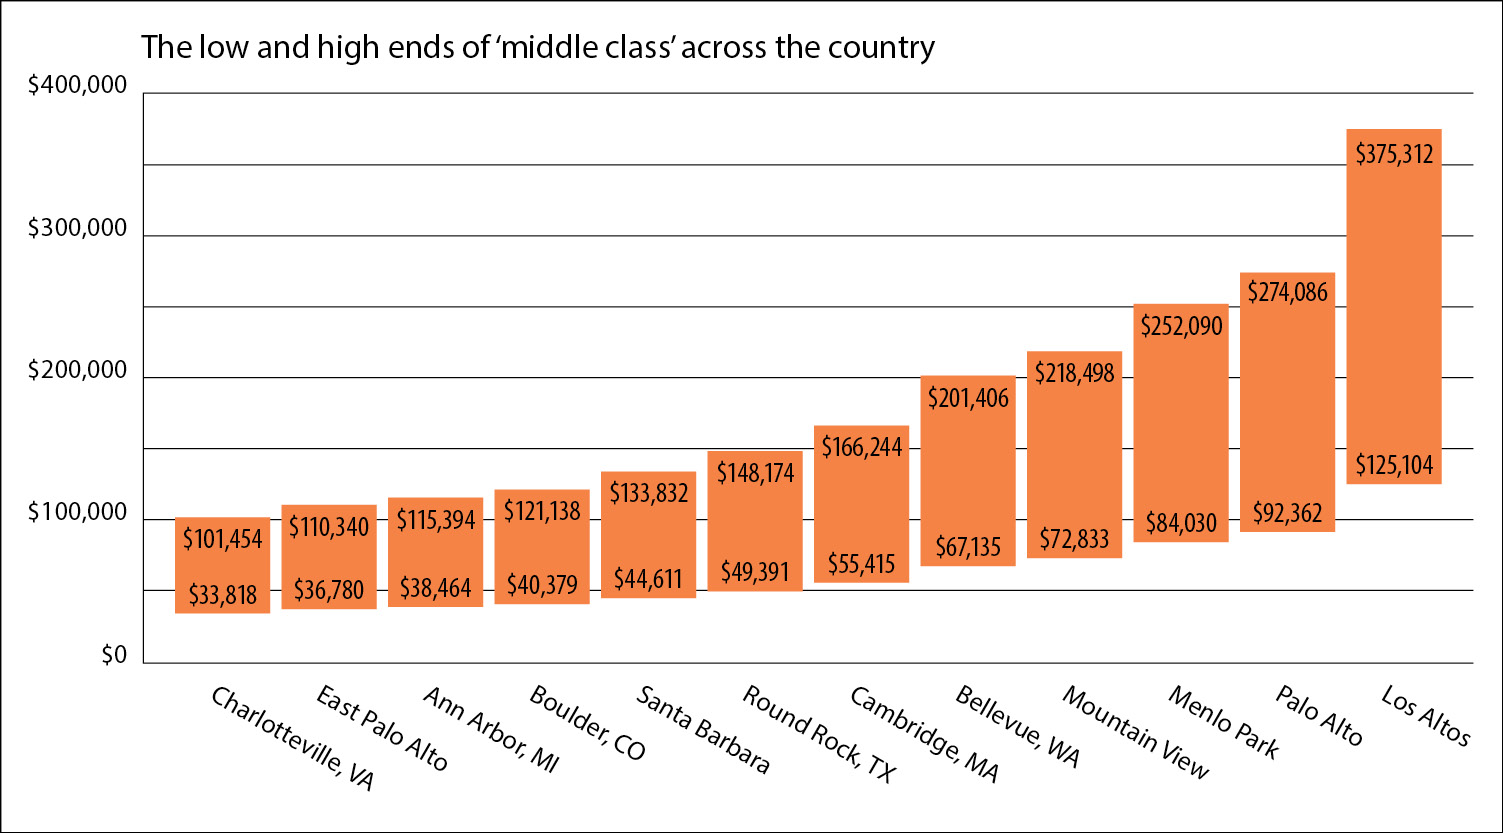 Ranges (in orange) use Pew Research Center definition of middle class as two-thirds to double the median household income. Figures have not been adjusted for household size. Source: U.S. Census, 2016 estimates